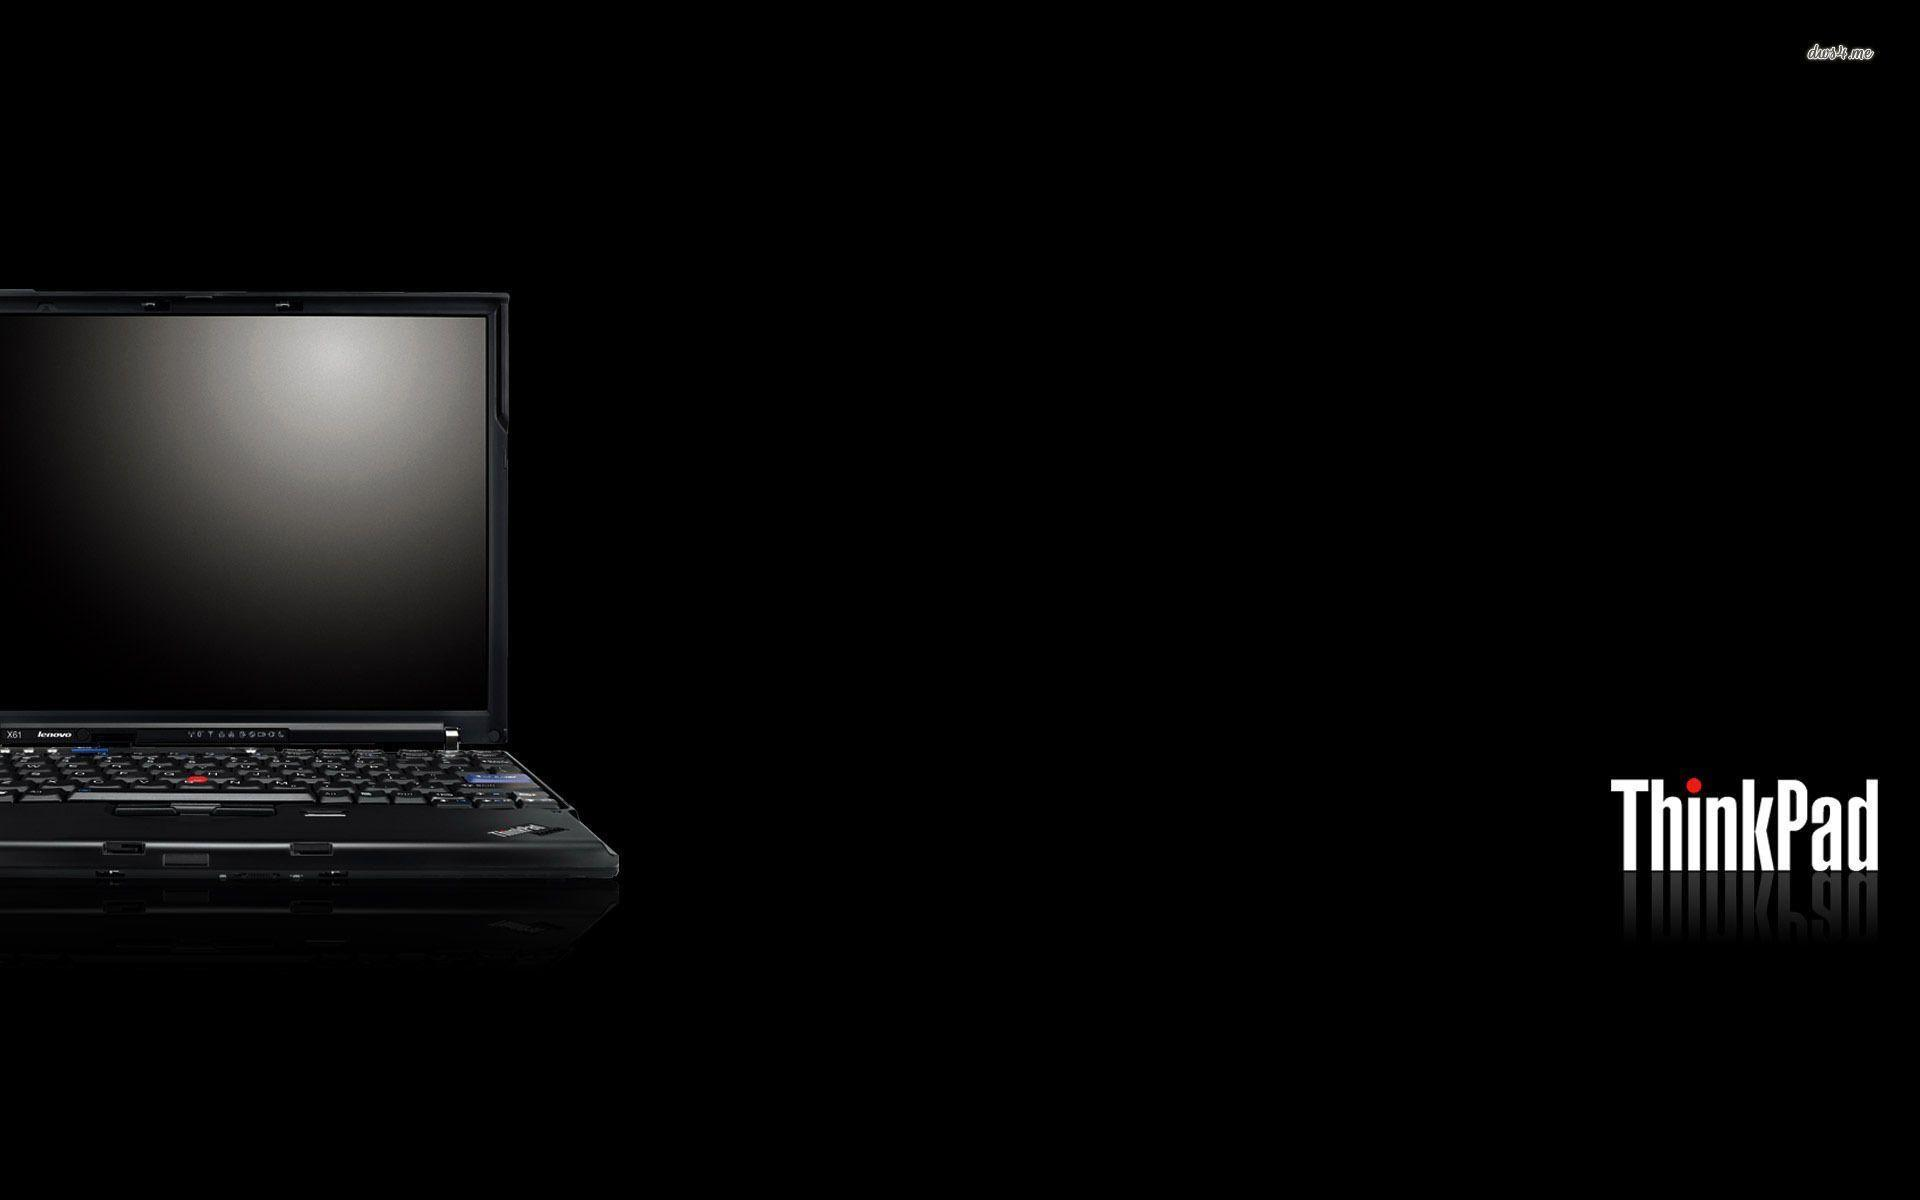 thinkpad wallpapers wallpaper - photo #8